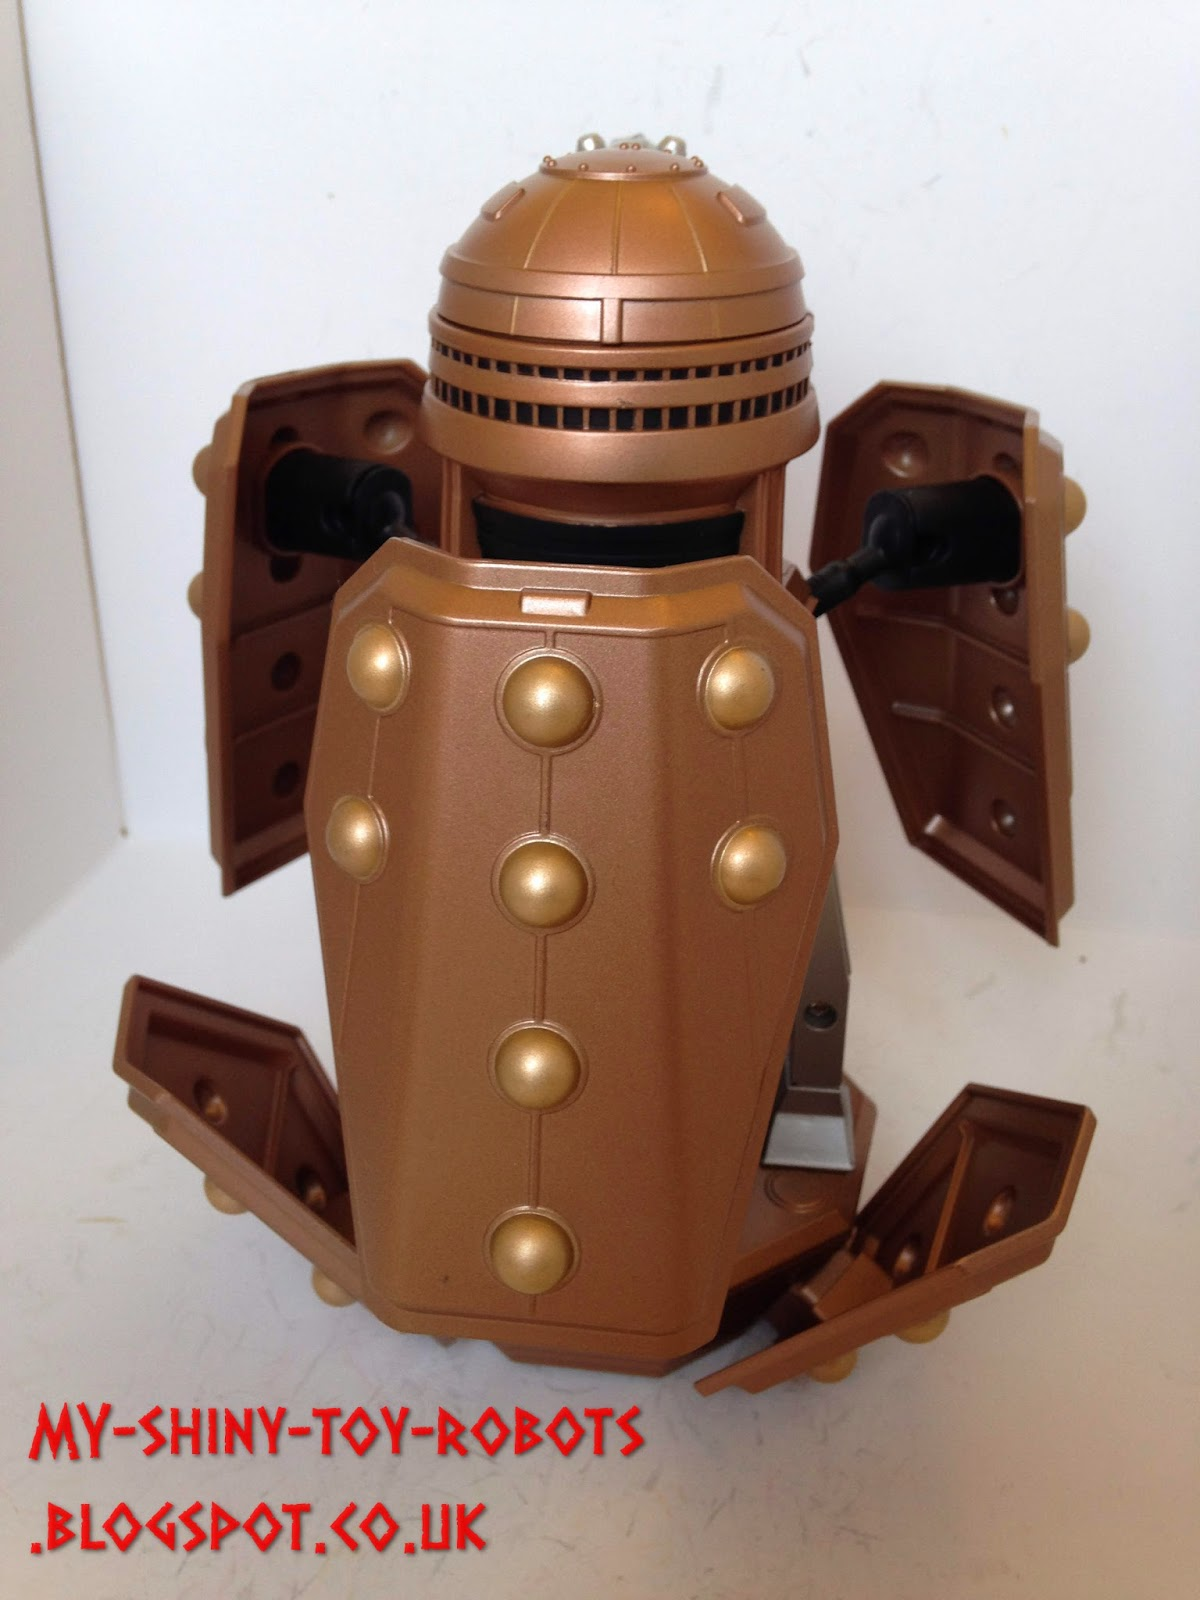 ...dalekception?